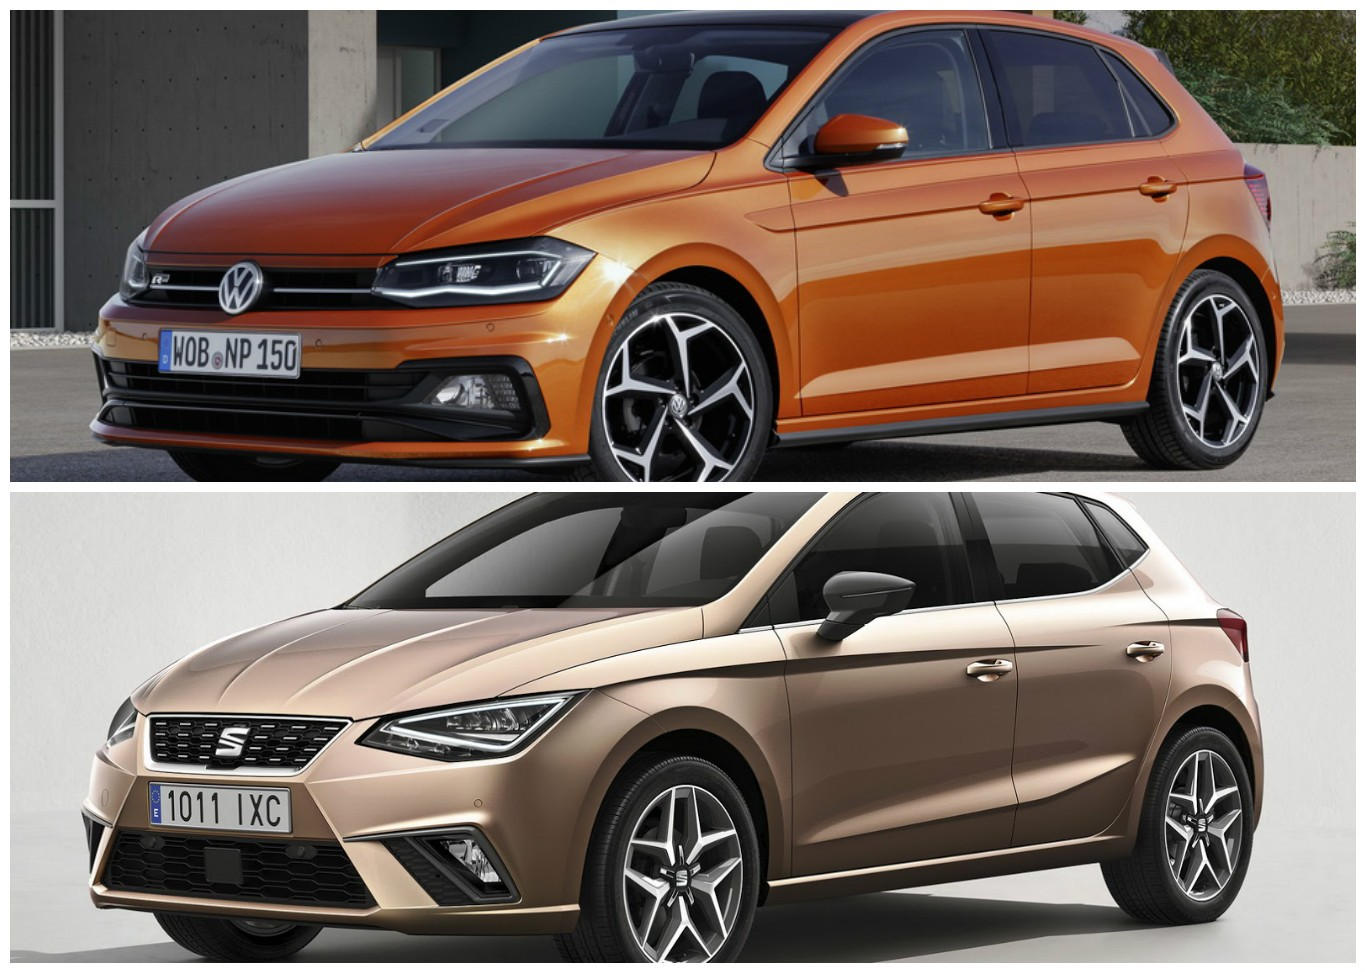 2018 Vw Polo Vs Seat Ibiza Mqb A0 Photo Comparison